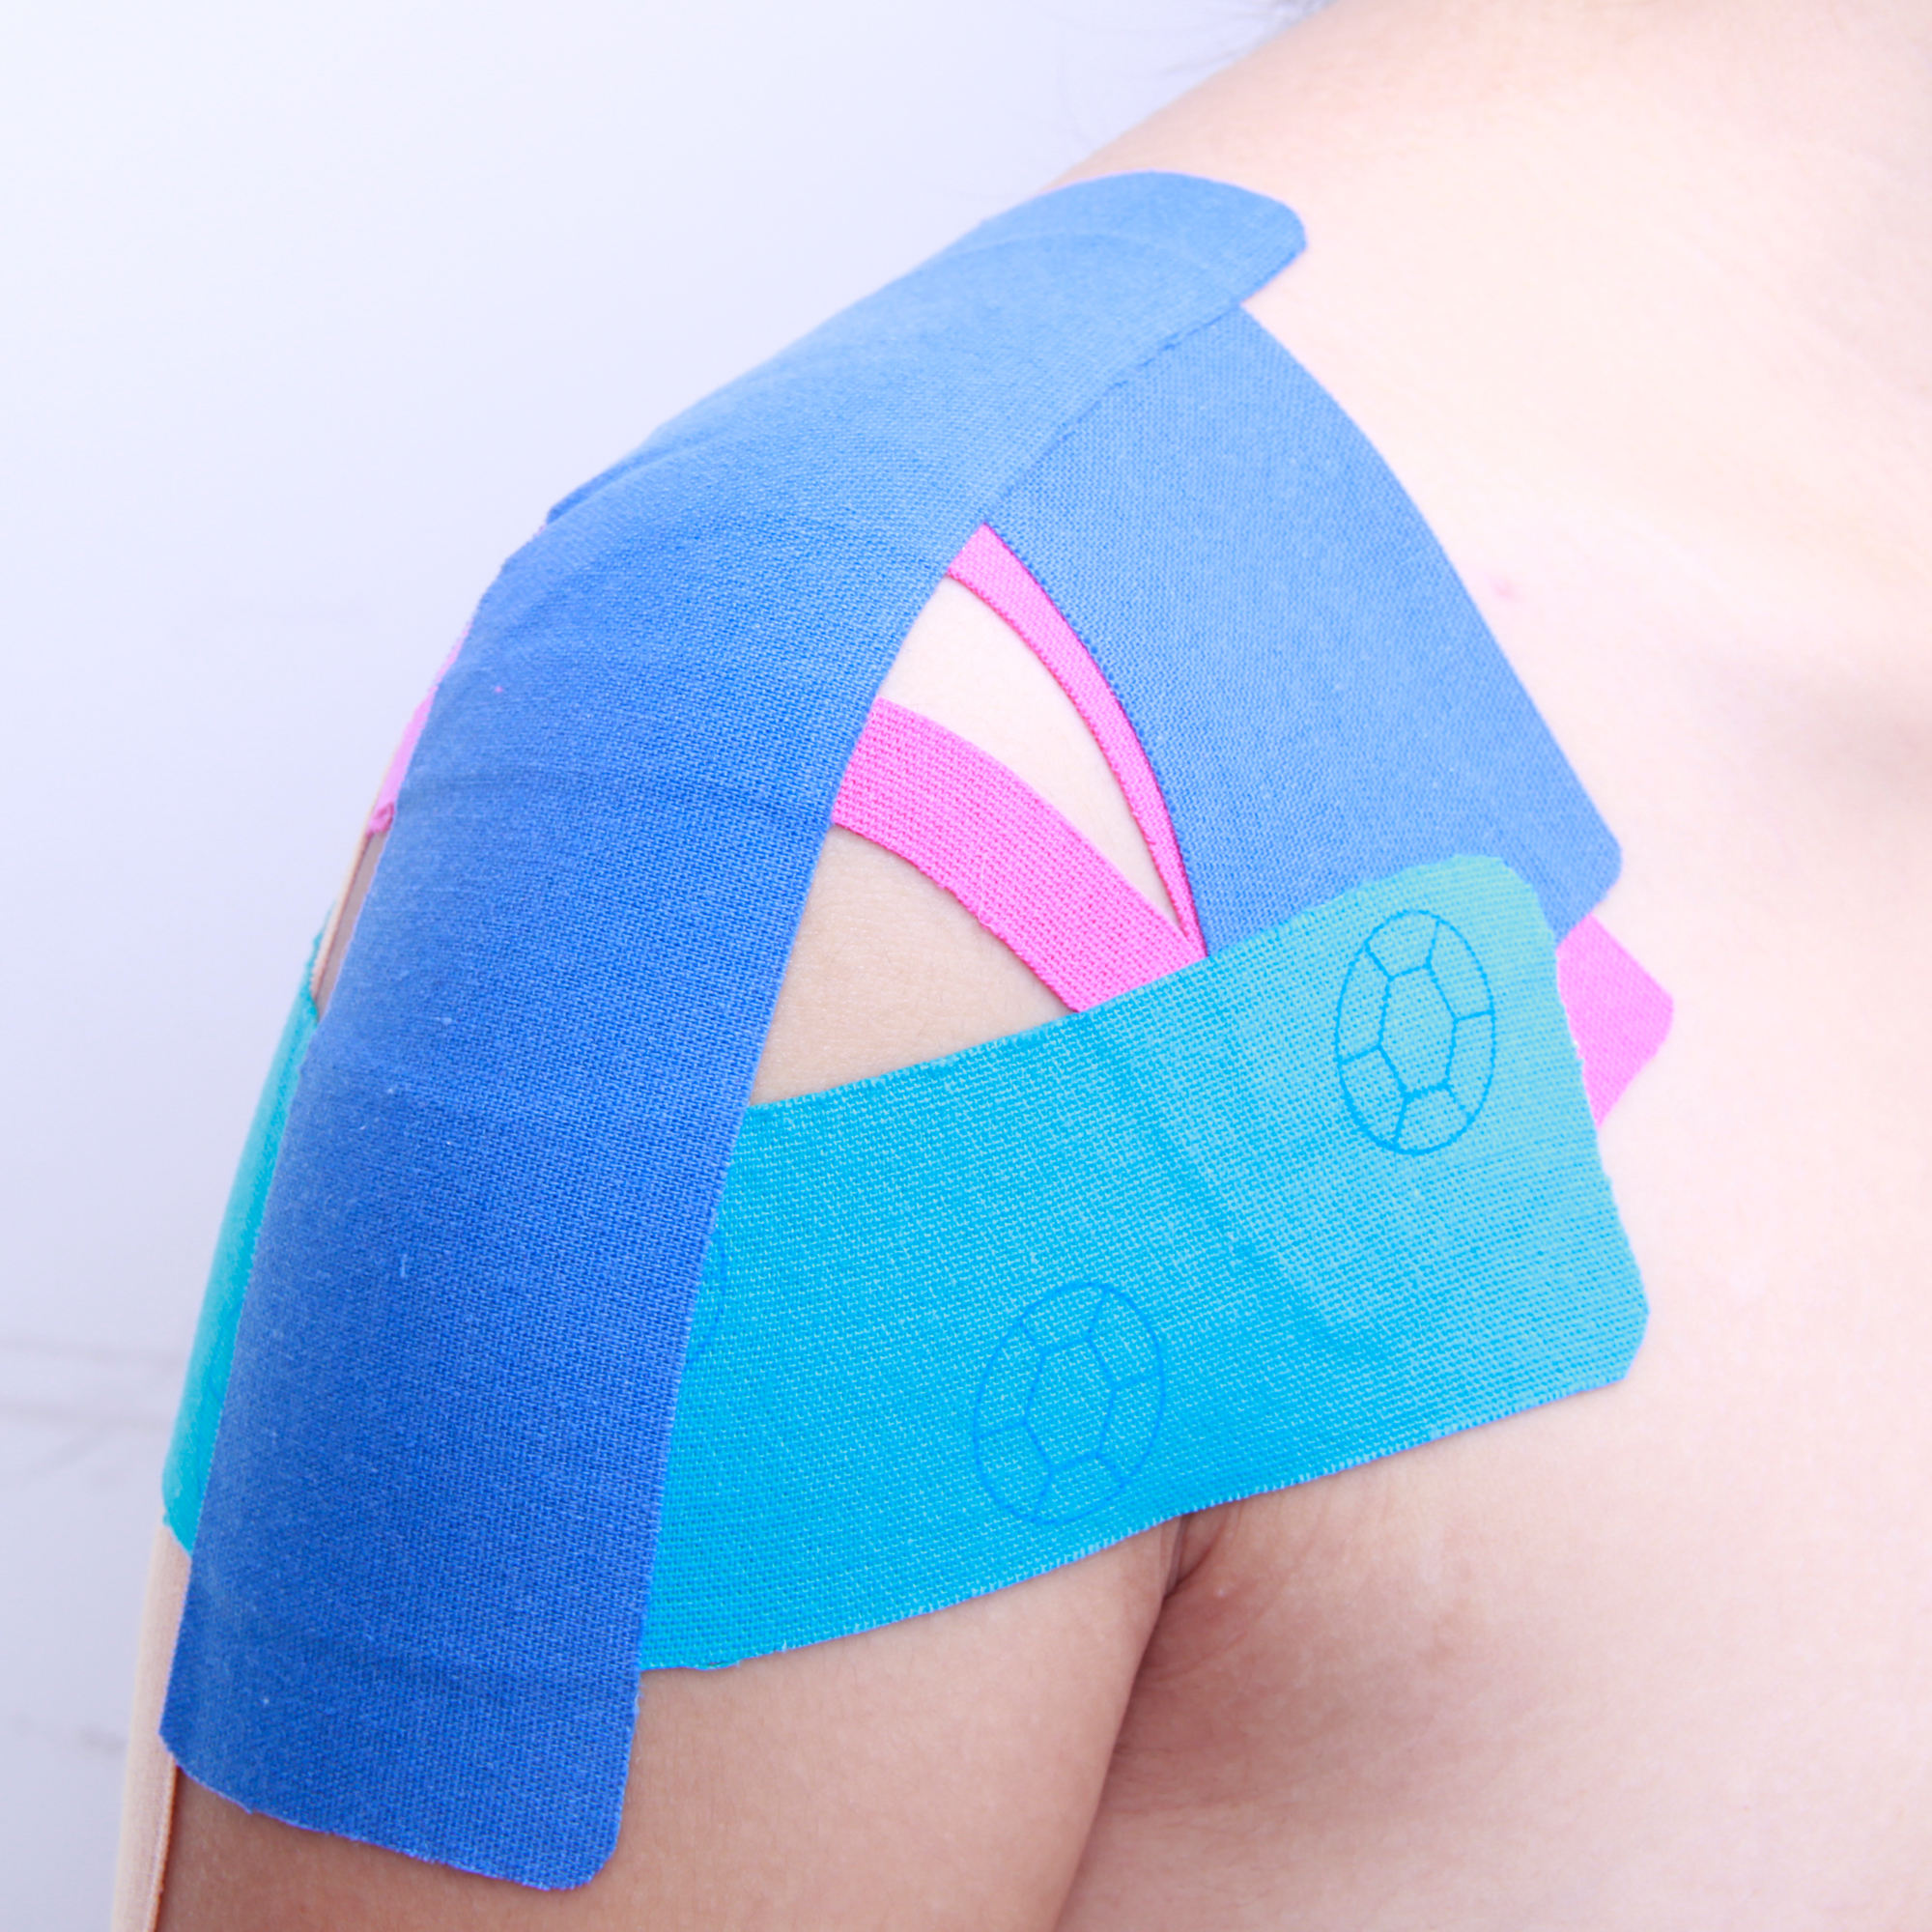 Physiotherapy tape for rehabilitation muscle orthopedics support by personal care with factory price CE/ISO13485